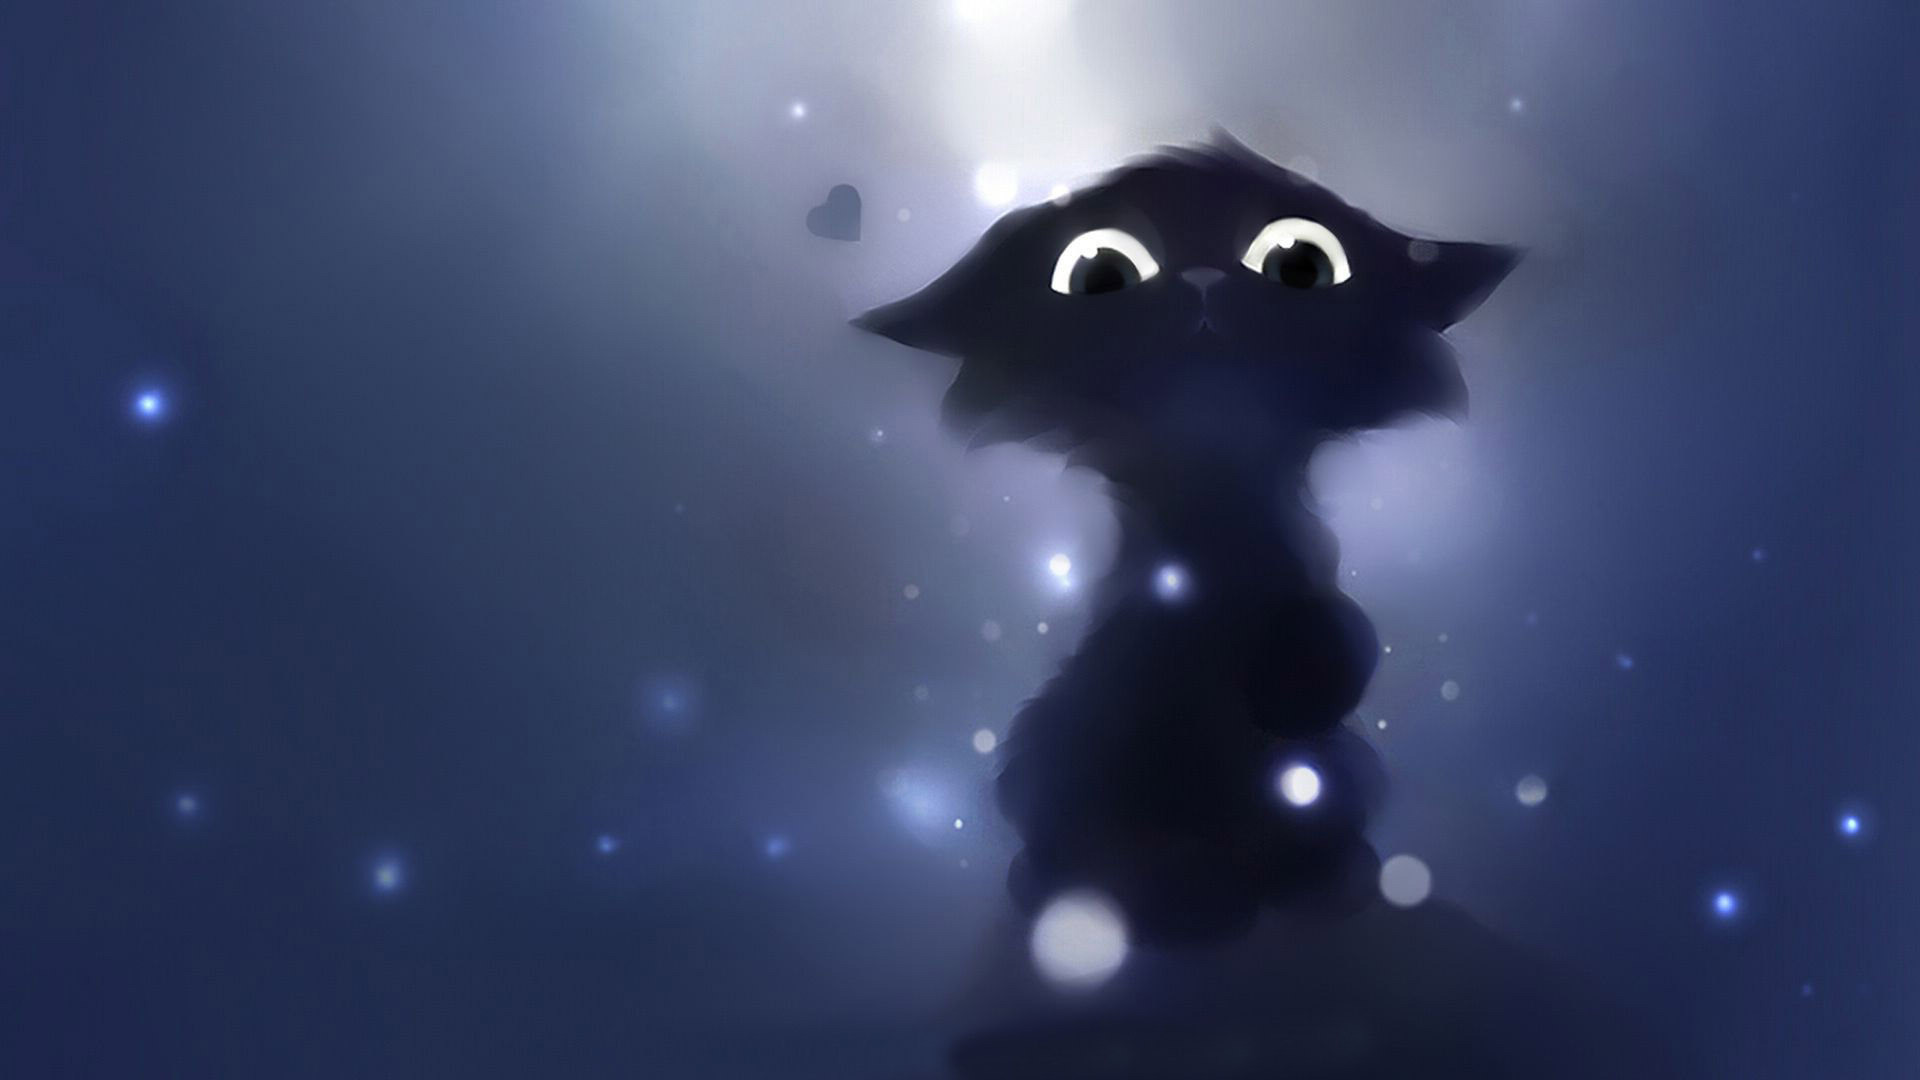 Cute Black Wallpapers 52 Images